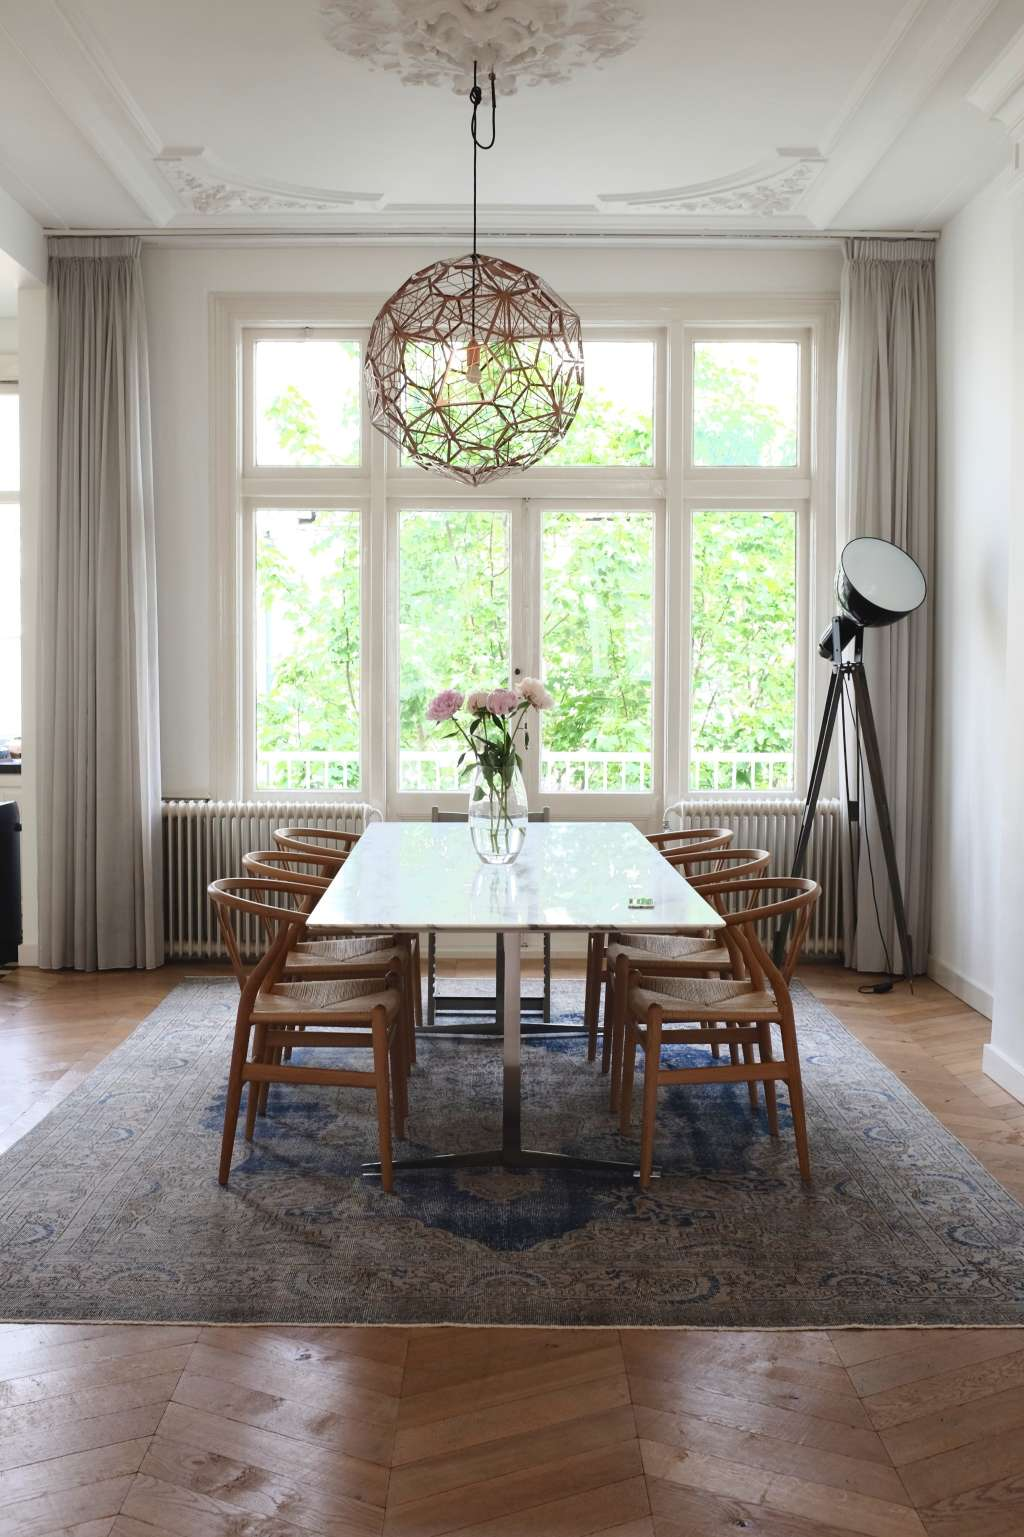 Classic french meets contemporary scandinavian style in amsterdam b50734726b700670f336f6558c674a84d1dc8a3a